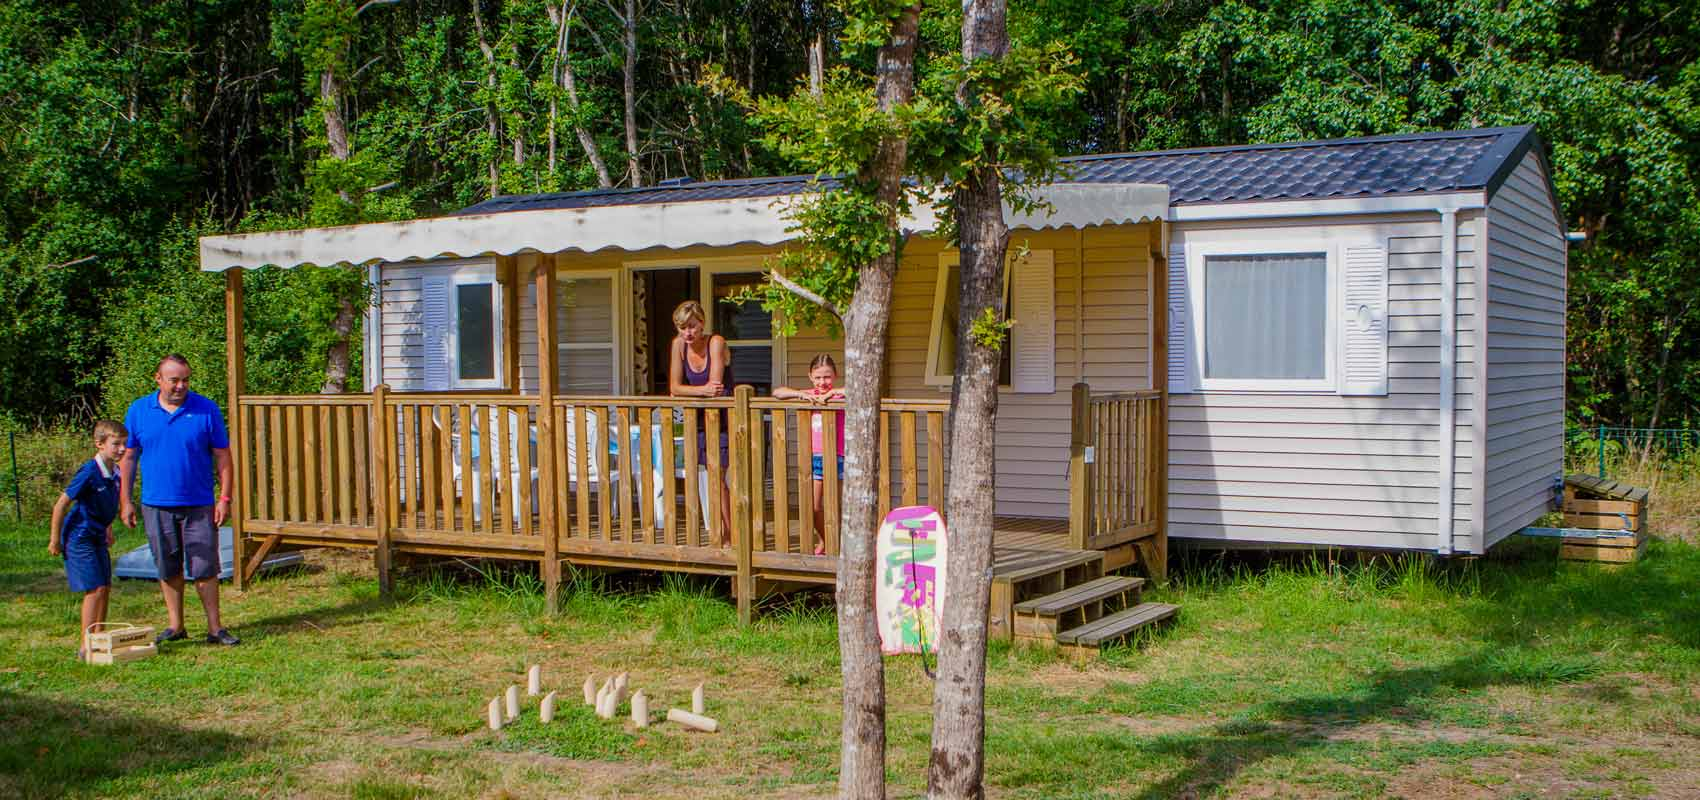 Location camping mobilhome